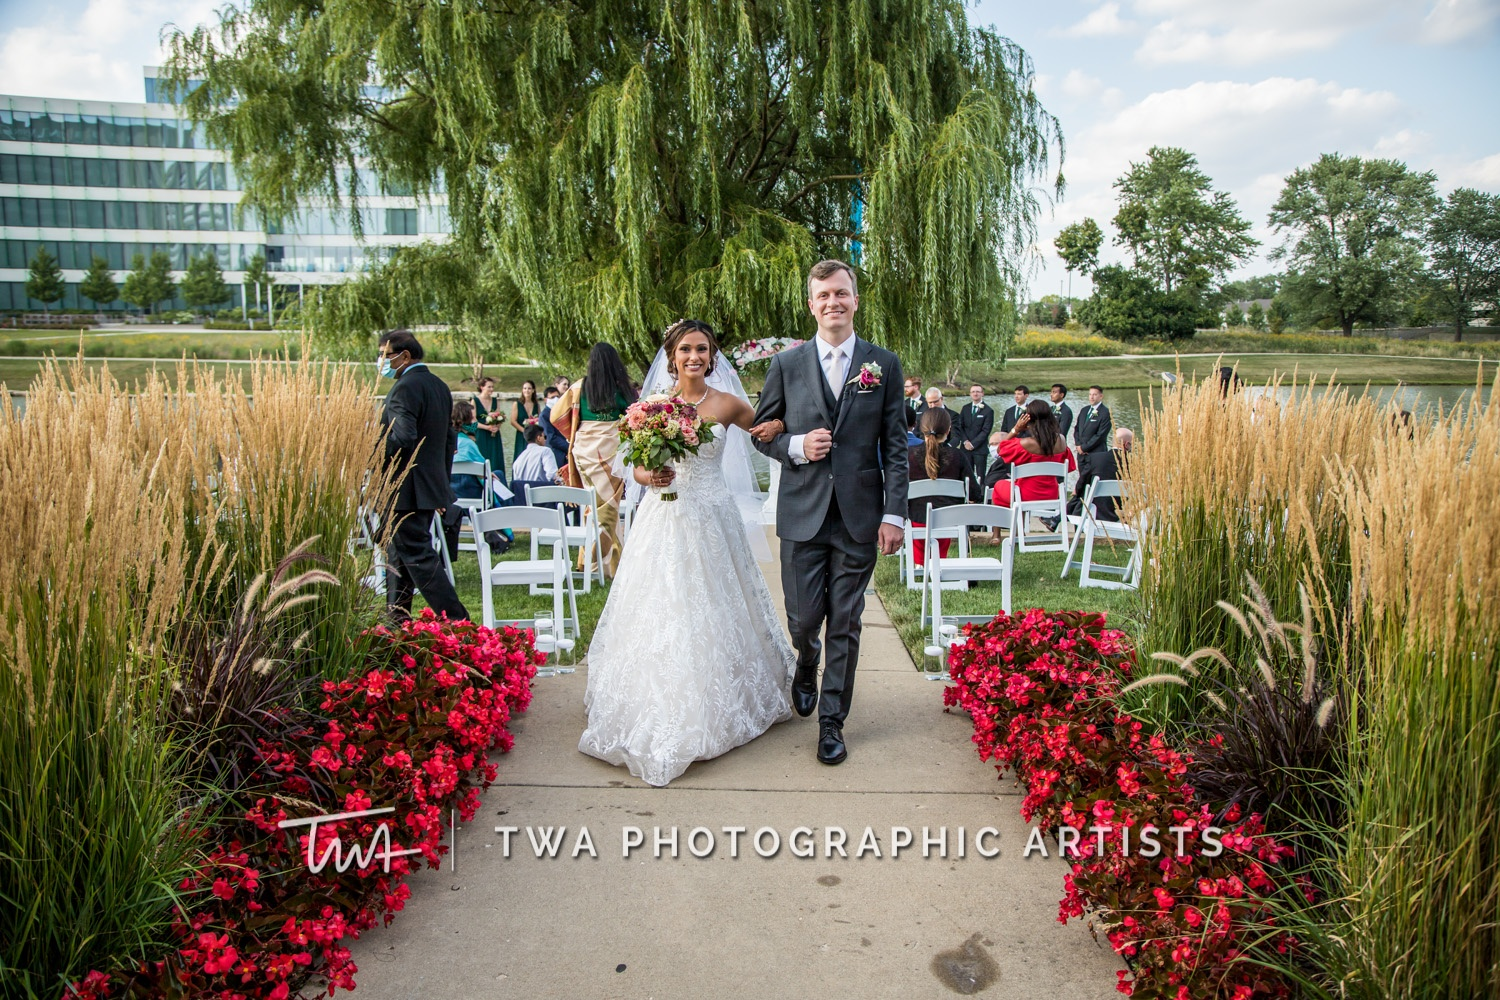 Chicago-Wedding-Photographer-TWA-Photographic-Artists-Shah_Billings_WM_TL-0744